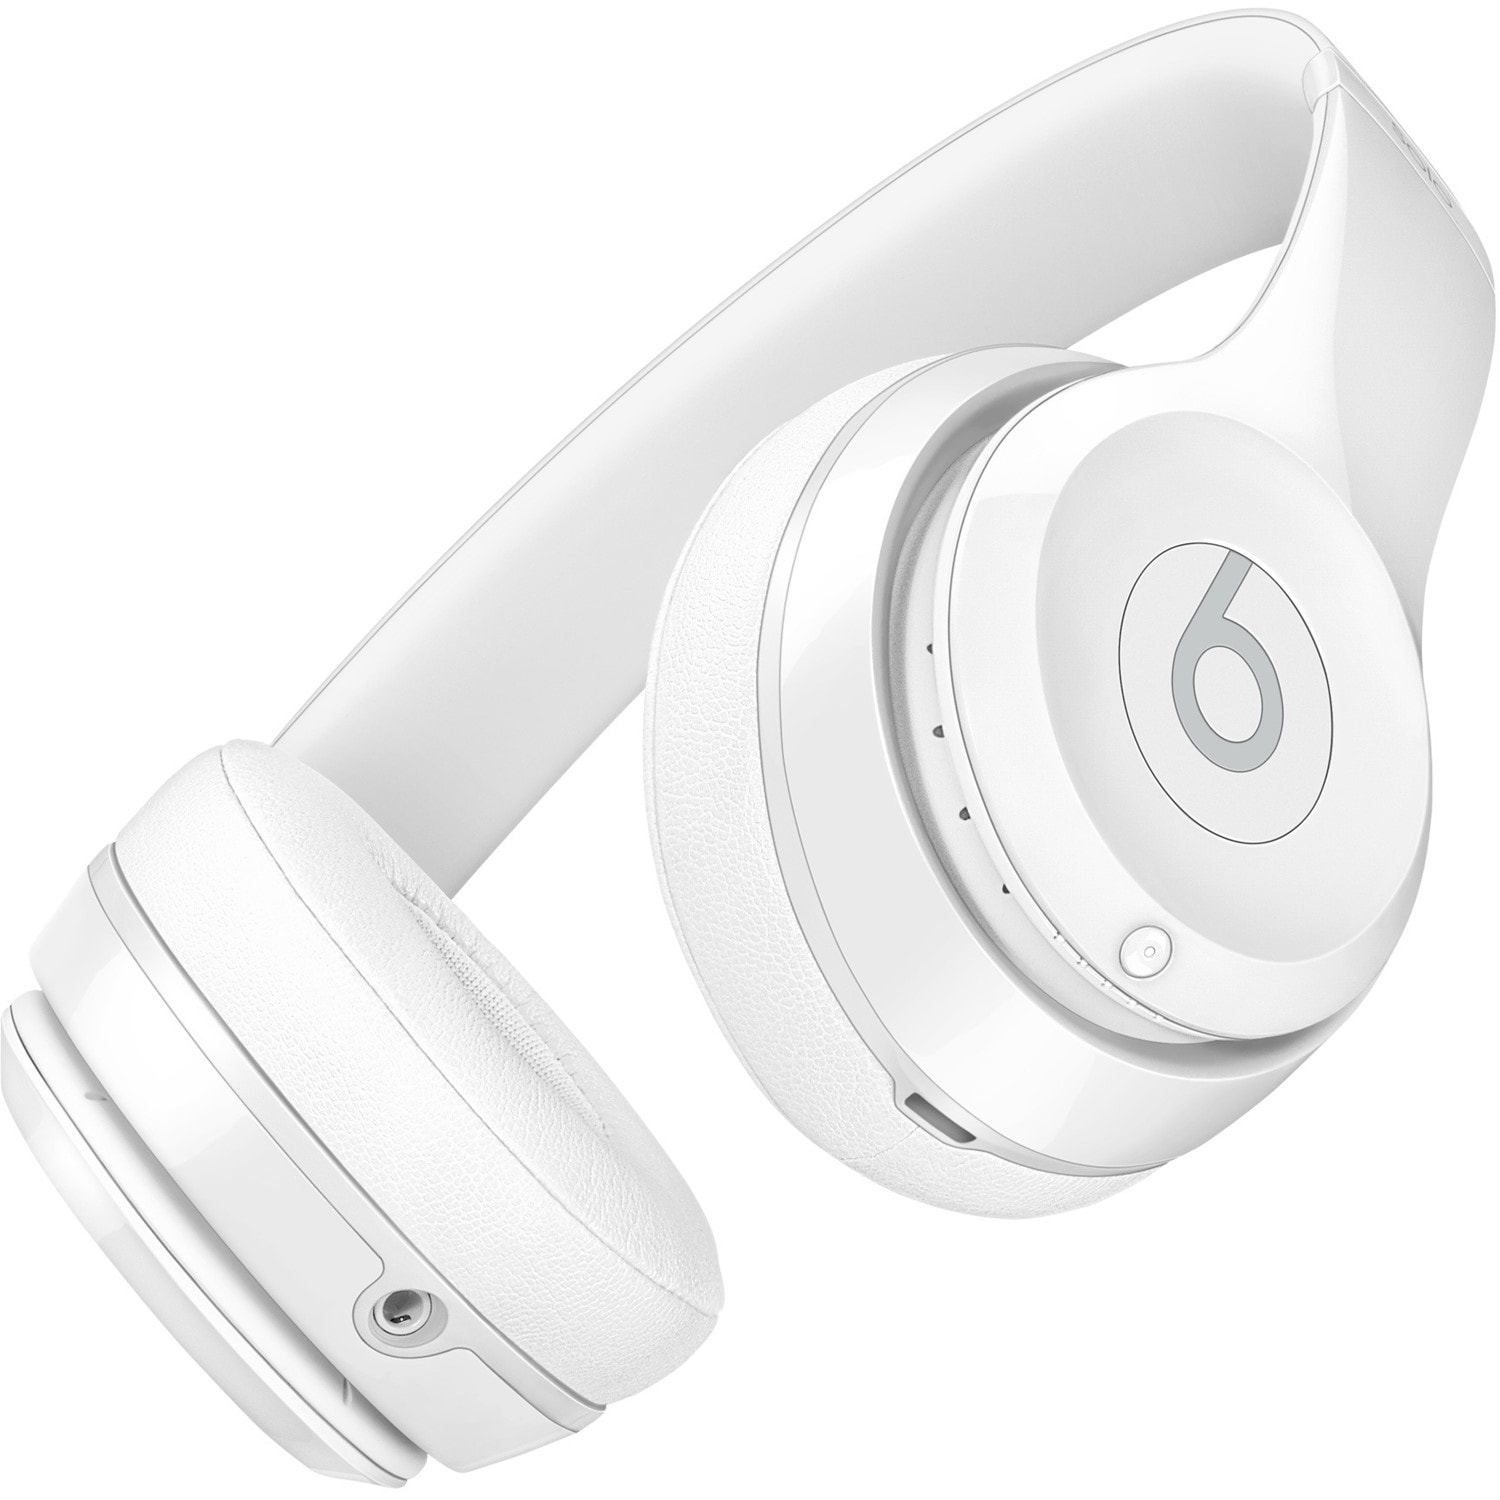 Promo Headphone Wireless Bluetooth Beat Drdre Termurah 2018 Manzone Gajah Mada 3 Tshirt White Putih L Buy Beats By Dr Dre Solo3 Wired Stereo Headset Over The